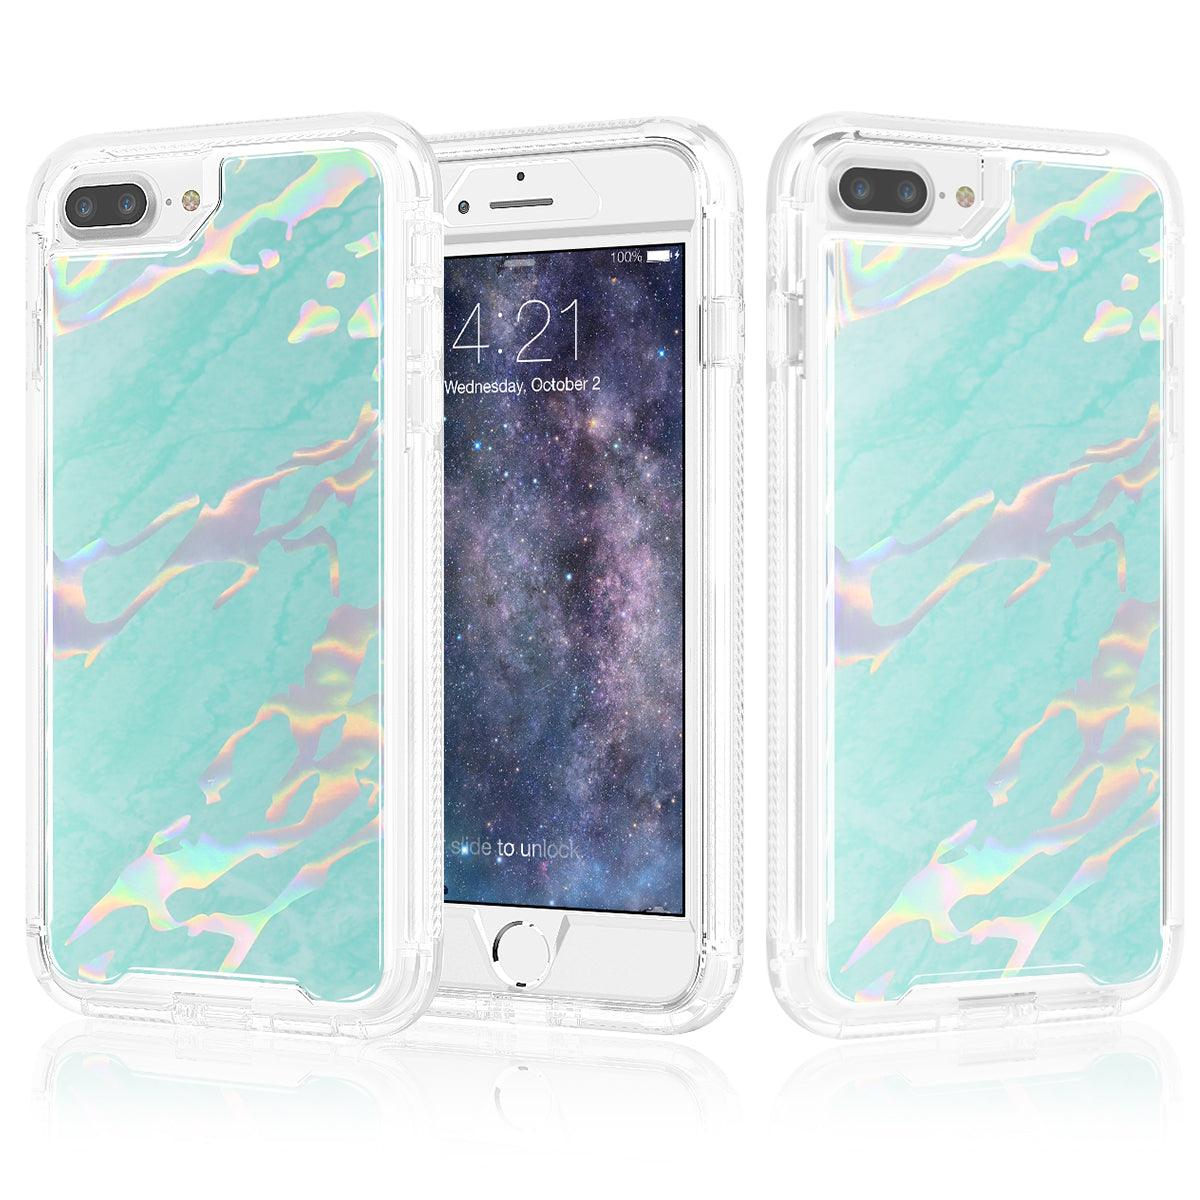 Apple iPhone 8 / iPhone 7 Marble Transparent Defender Armor Hybrid Case by Modes